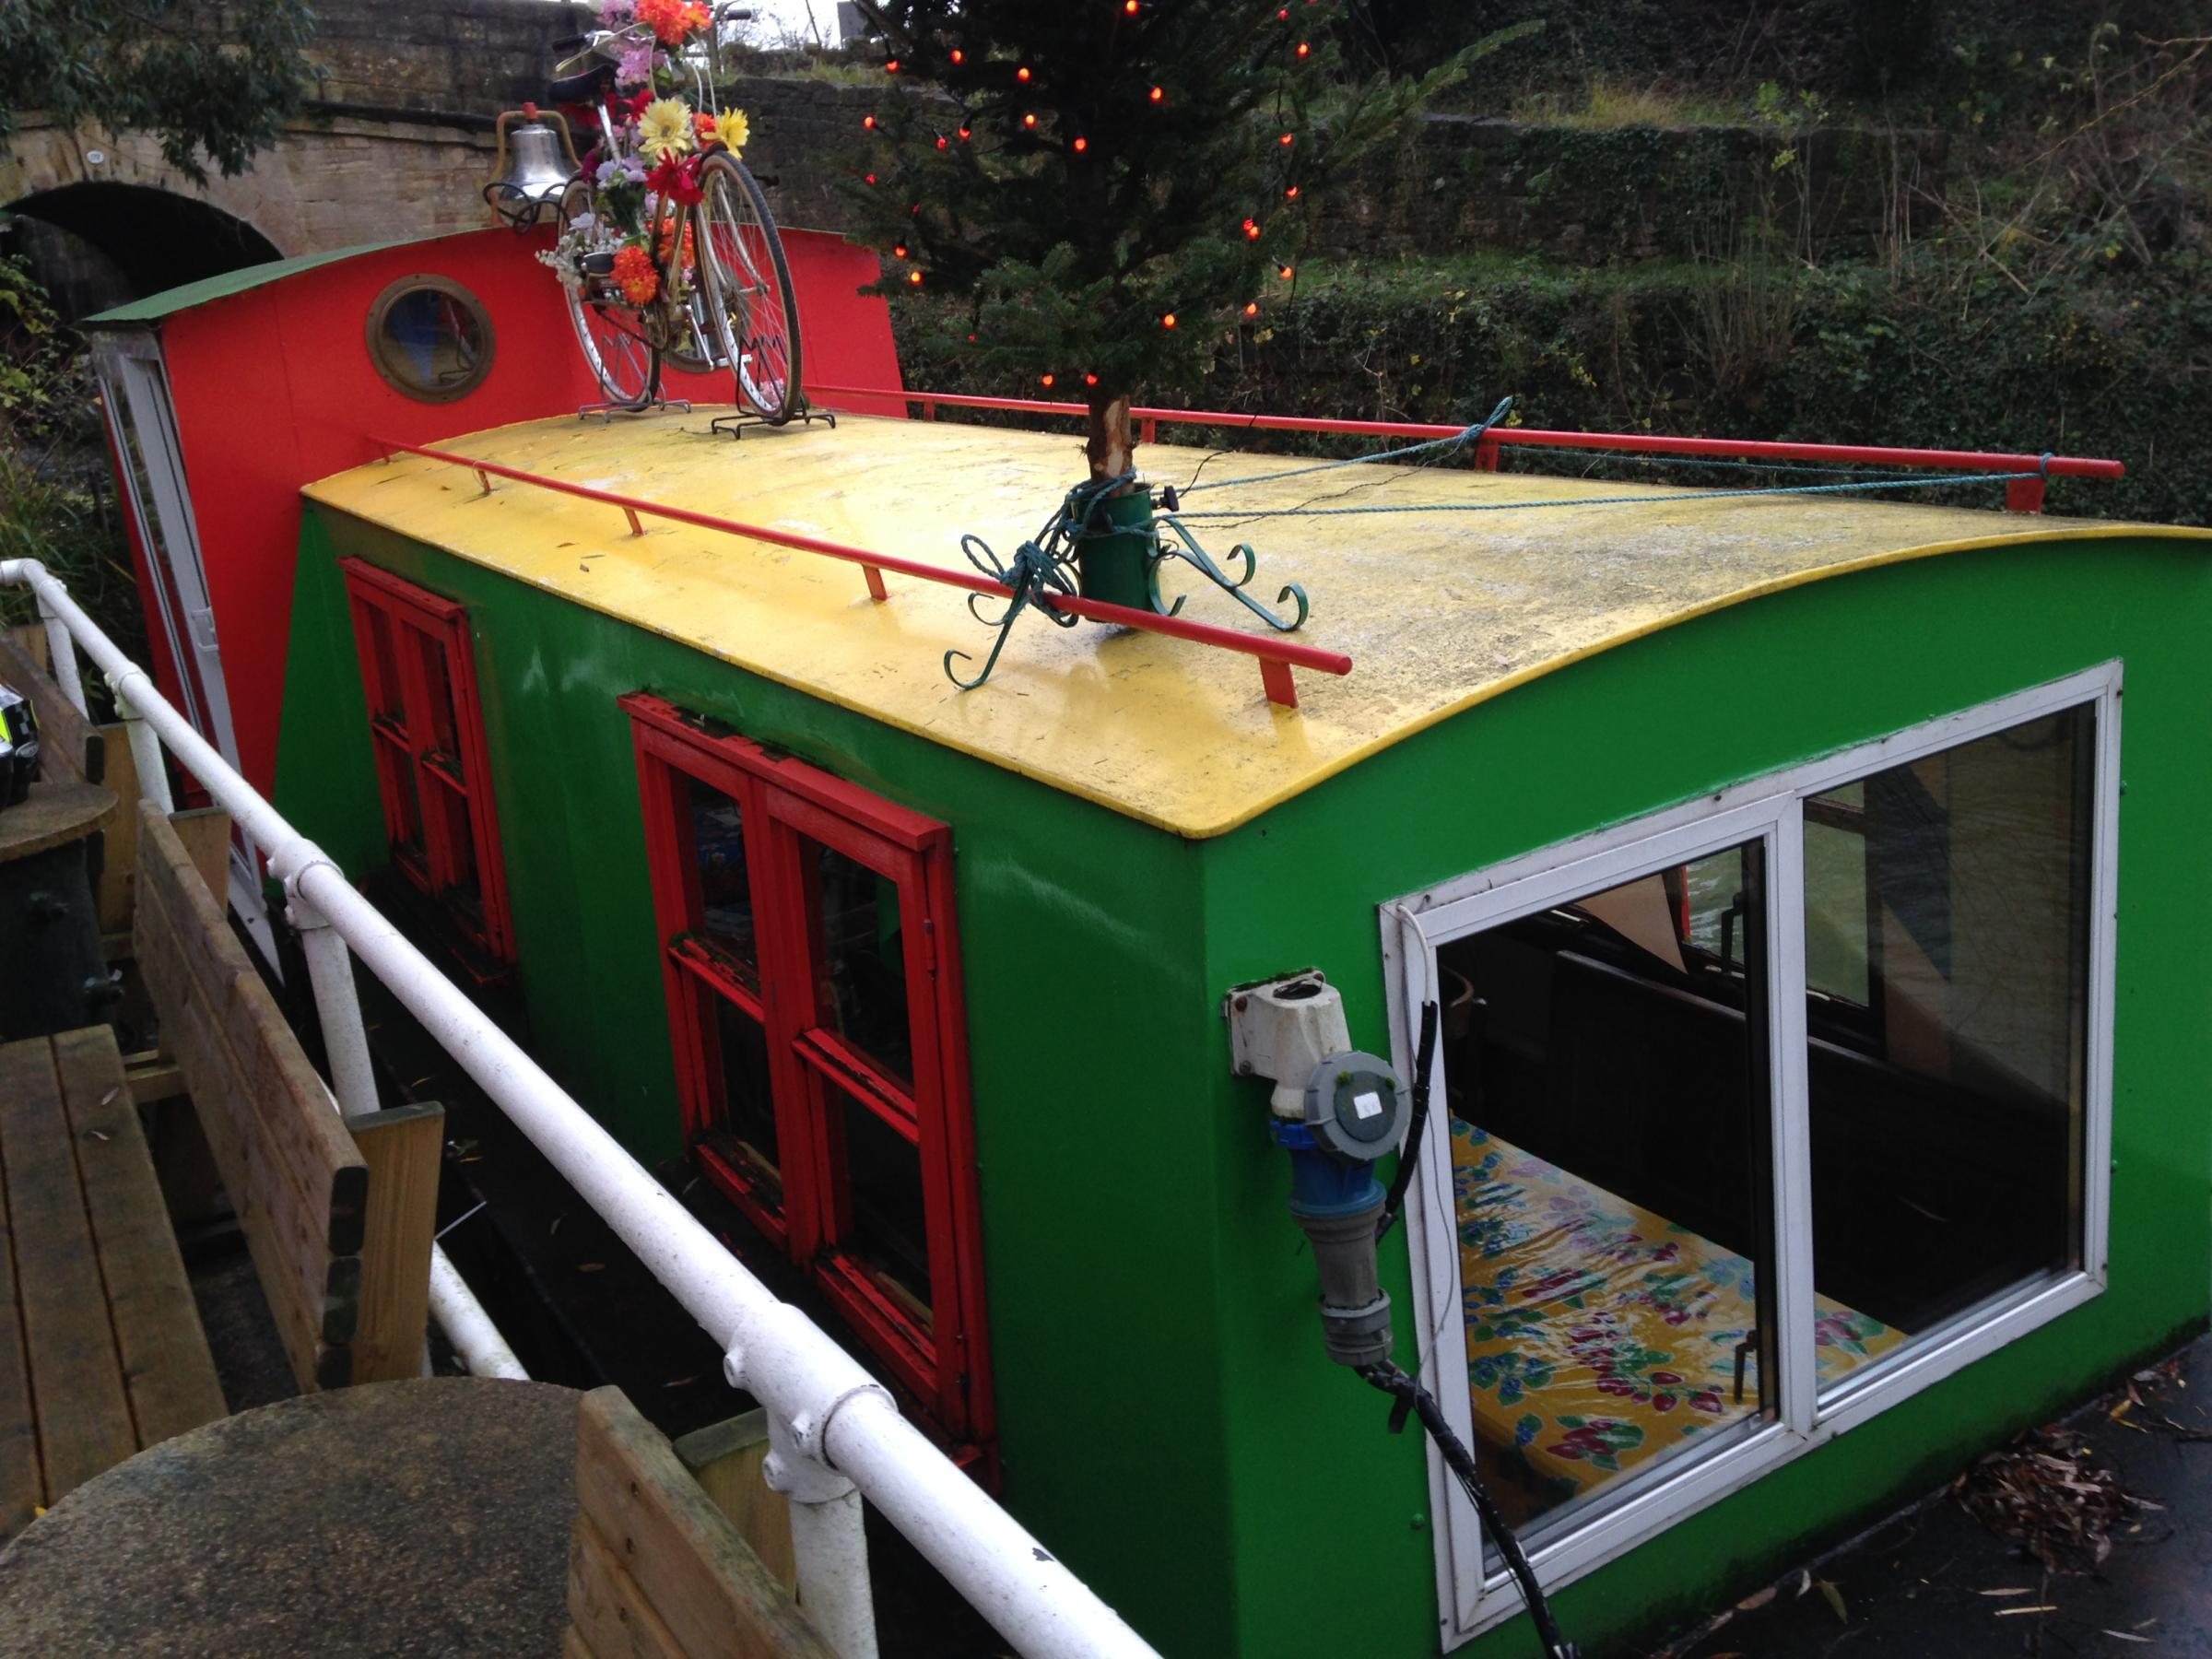 A canal boat which has been transformed into seating at the Lock Inn Café